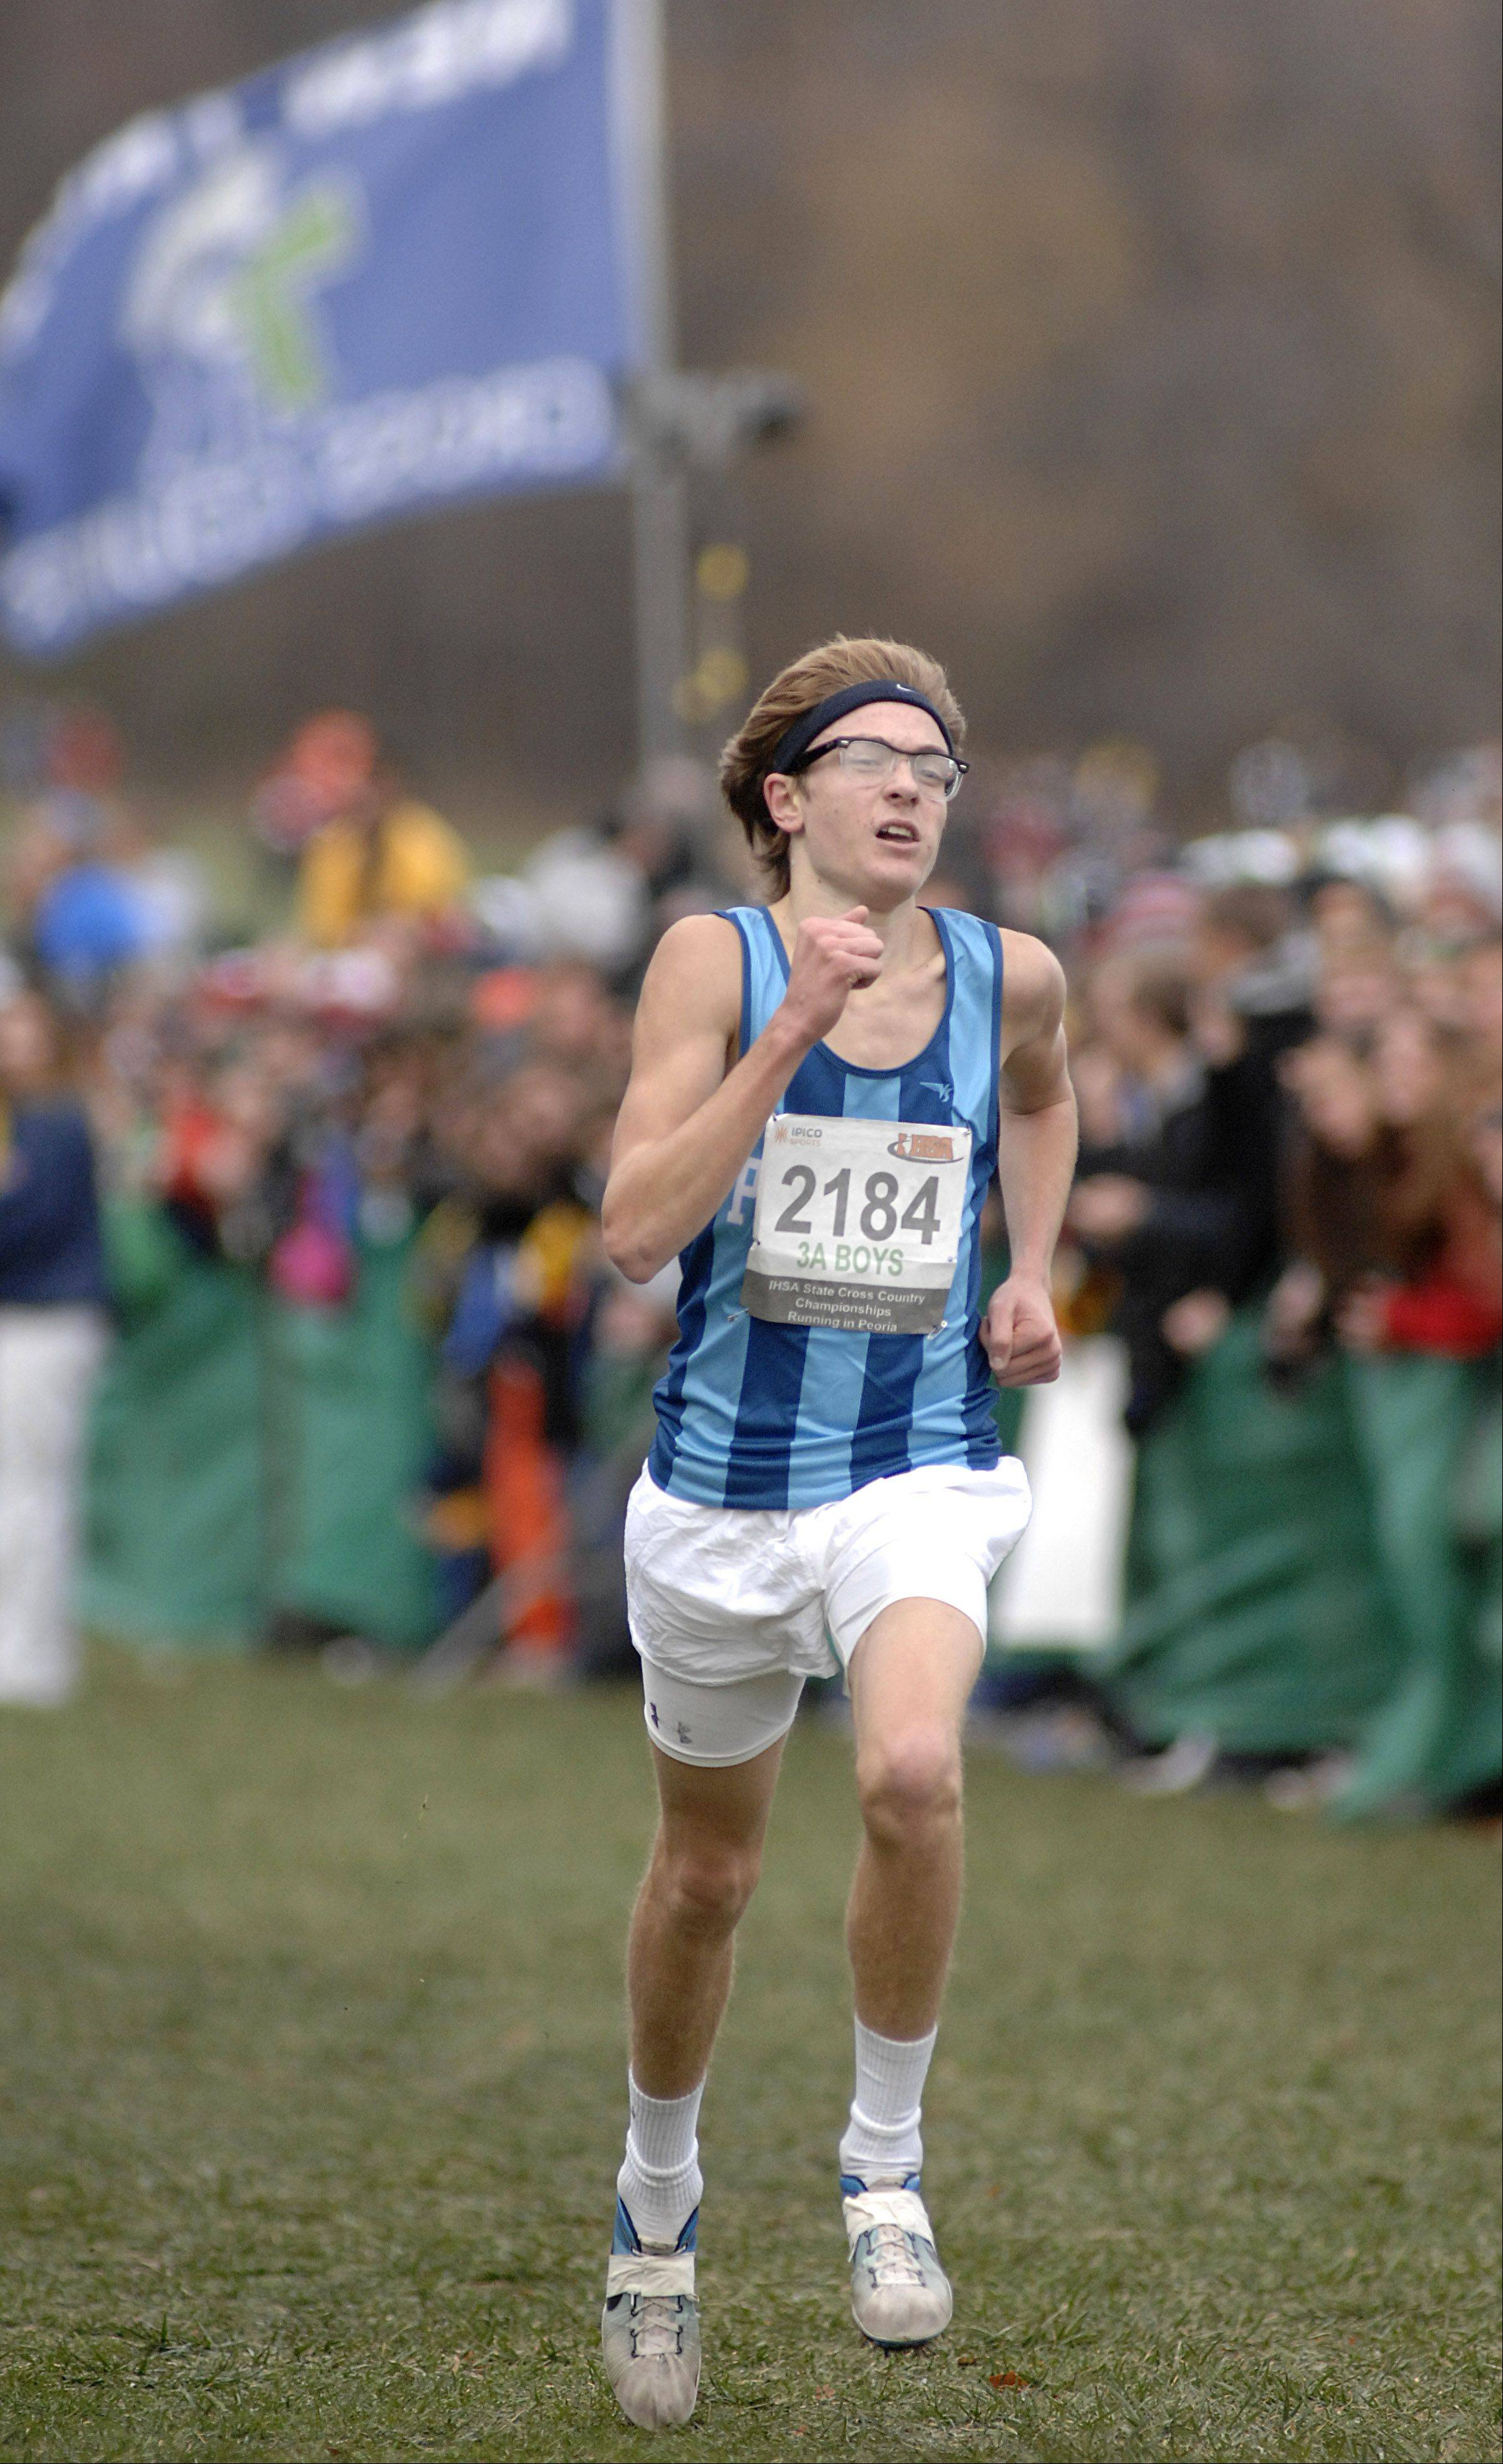 Prospect's Quentin Shaffer approaches the finish line with a second-place effort in the Class 3A race Saturday at Detweiller Park in Peoria.